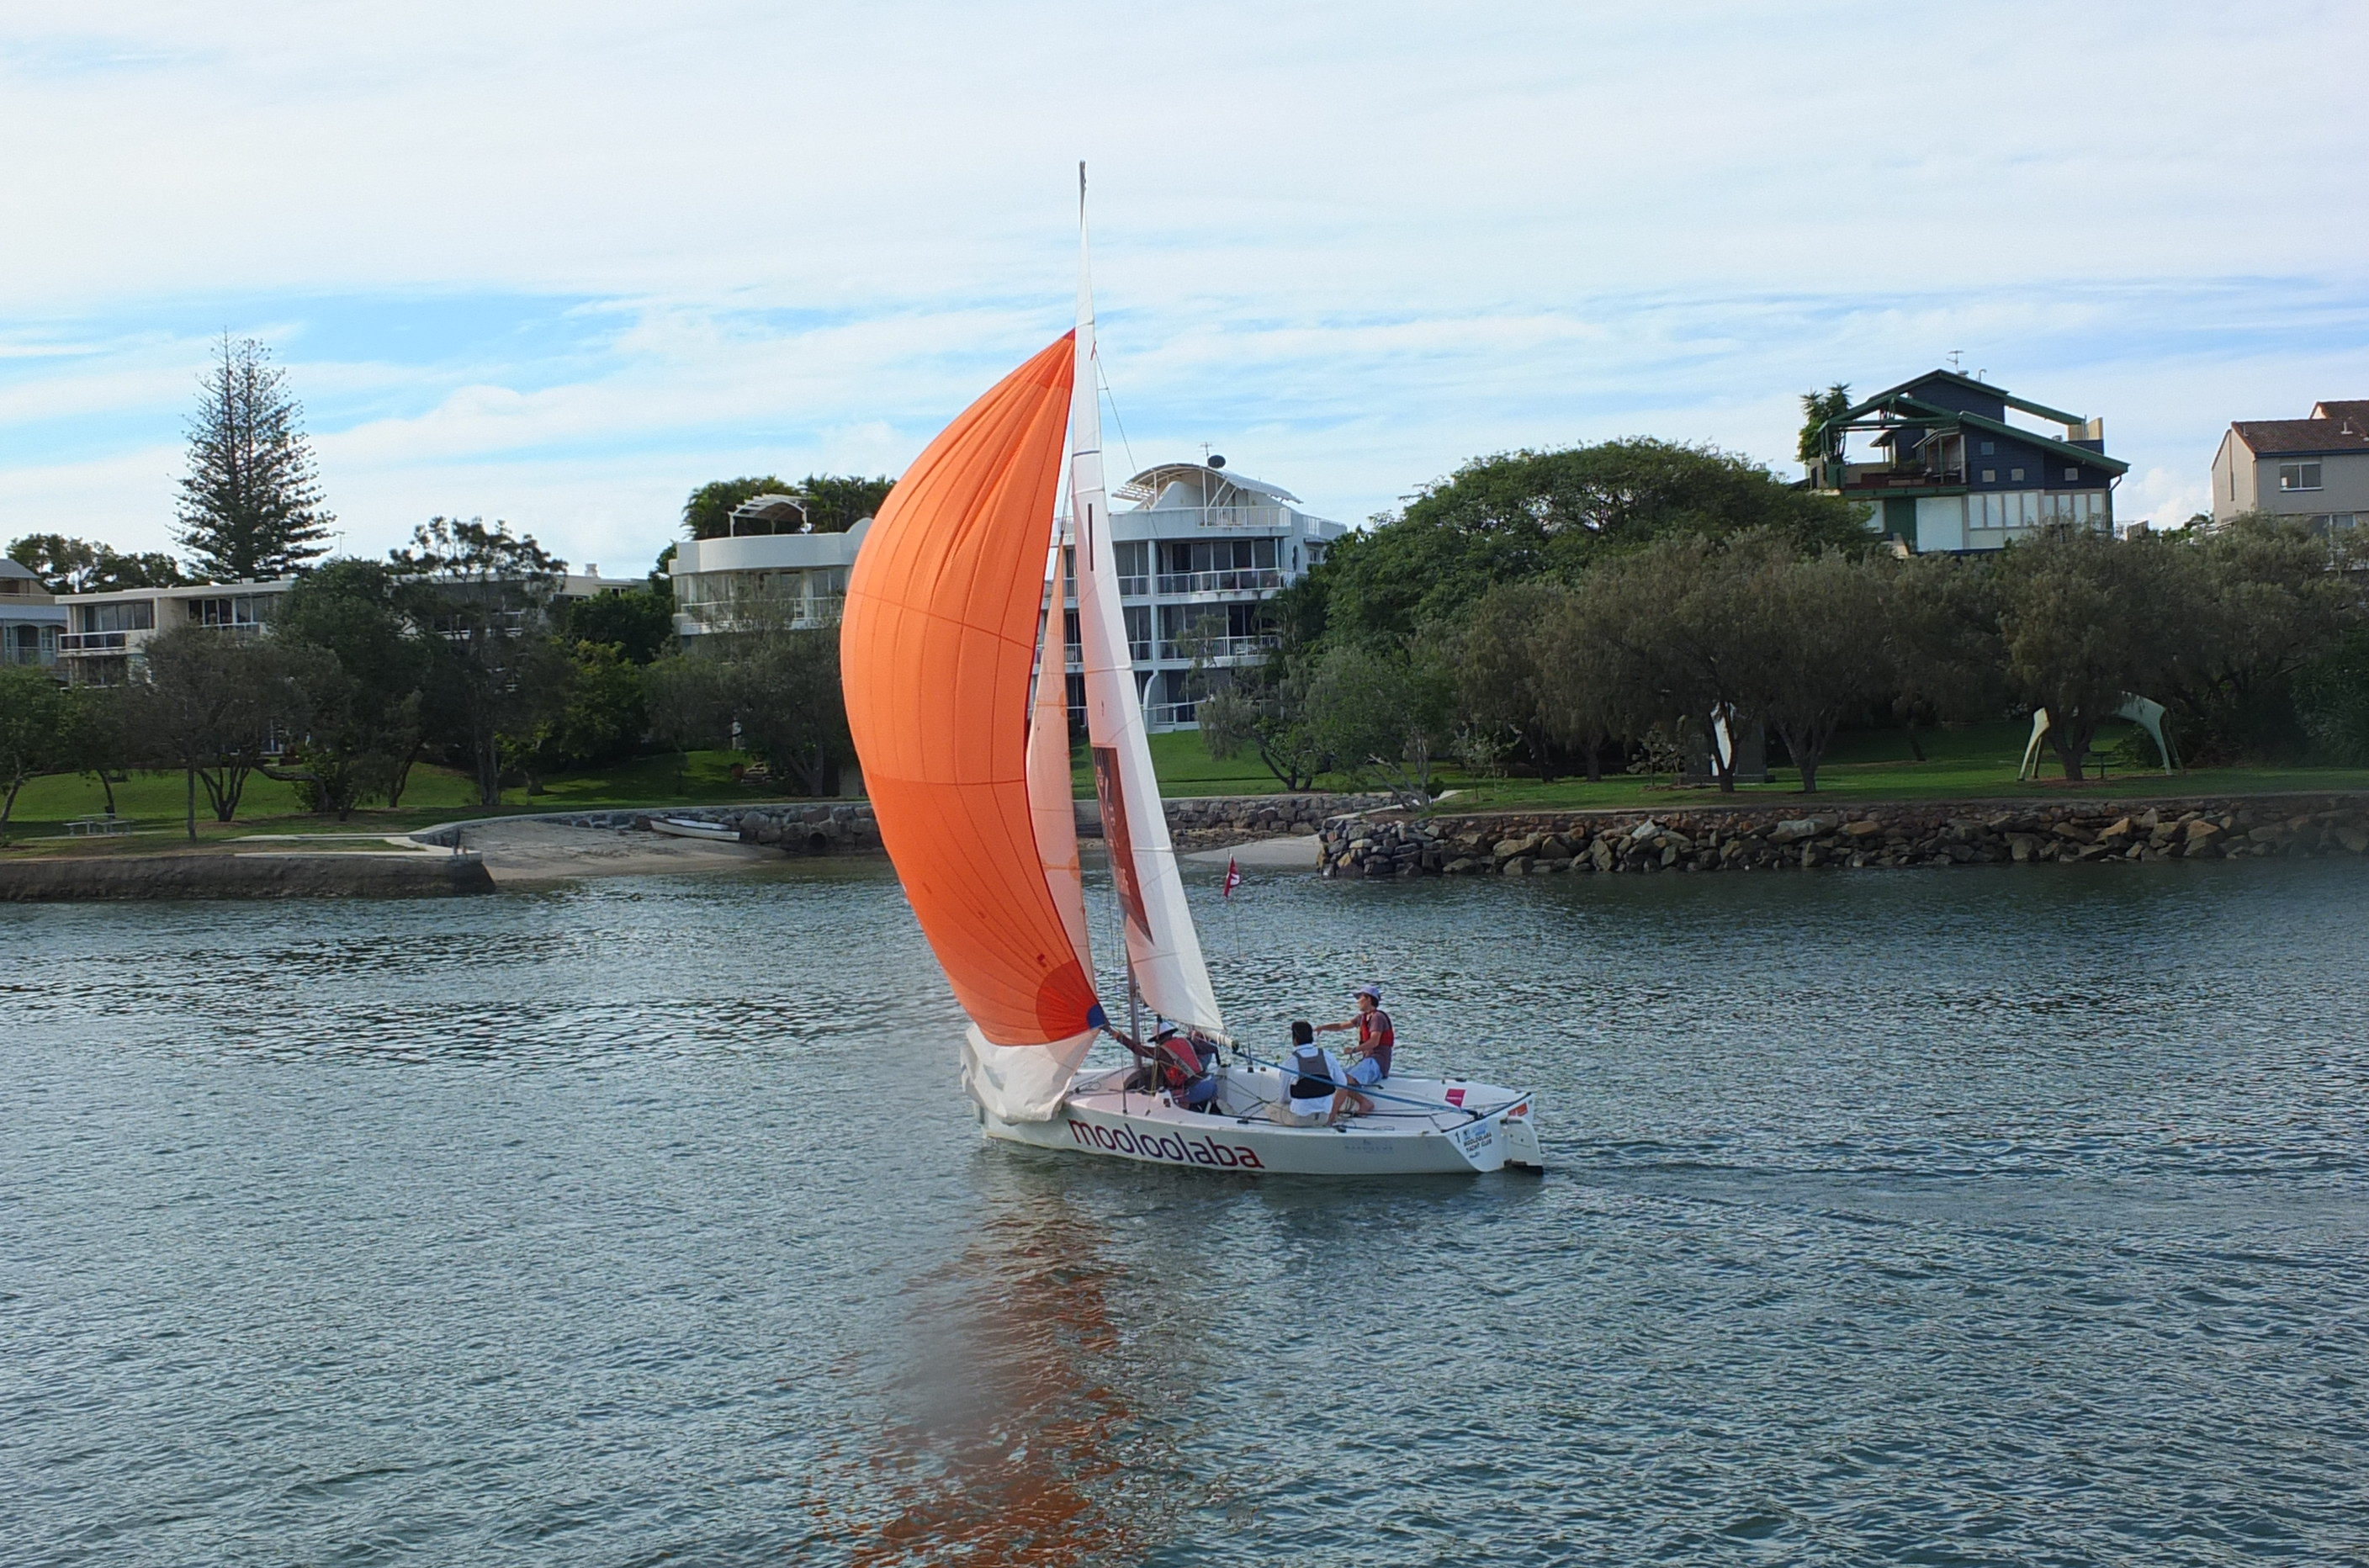 Seafood Cruise Mooloolaba Floating Restaurant And Venue